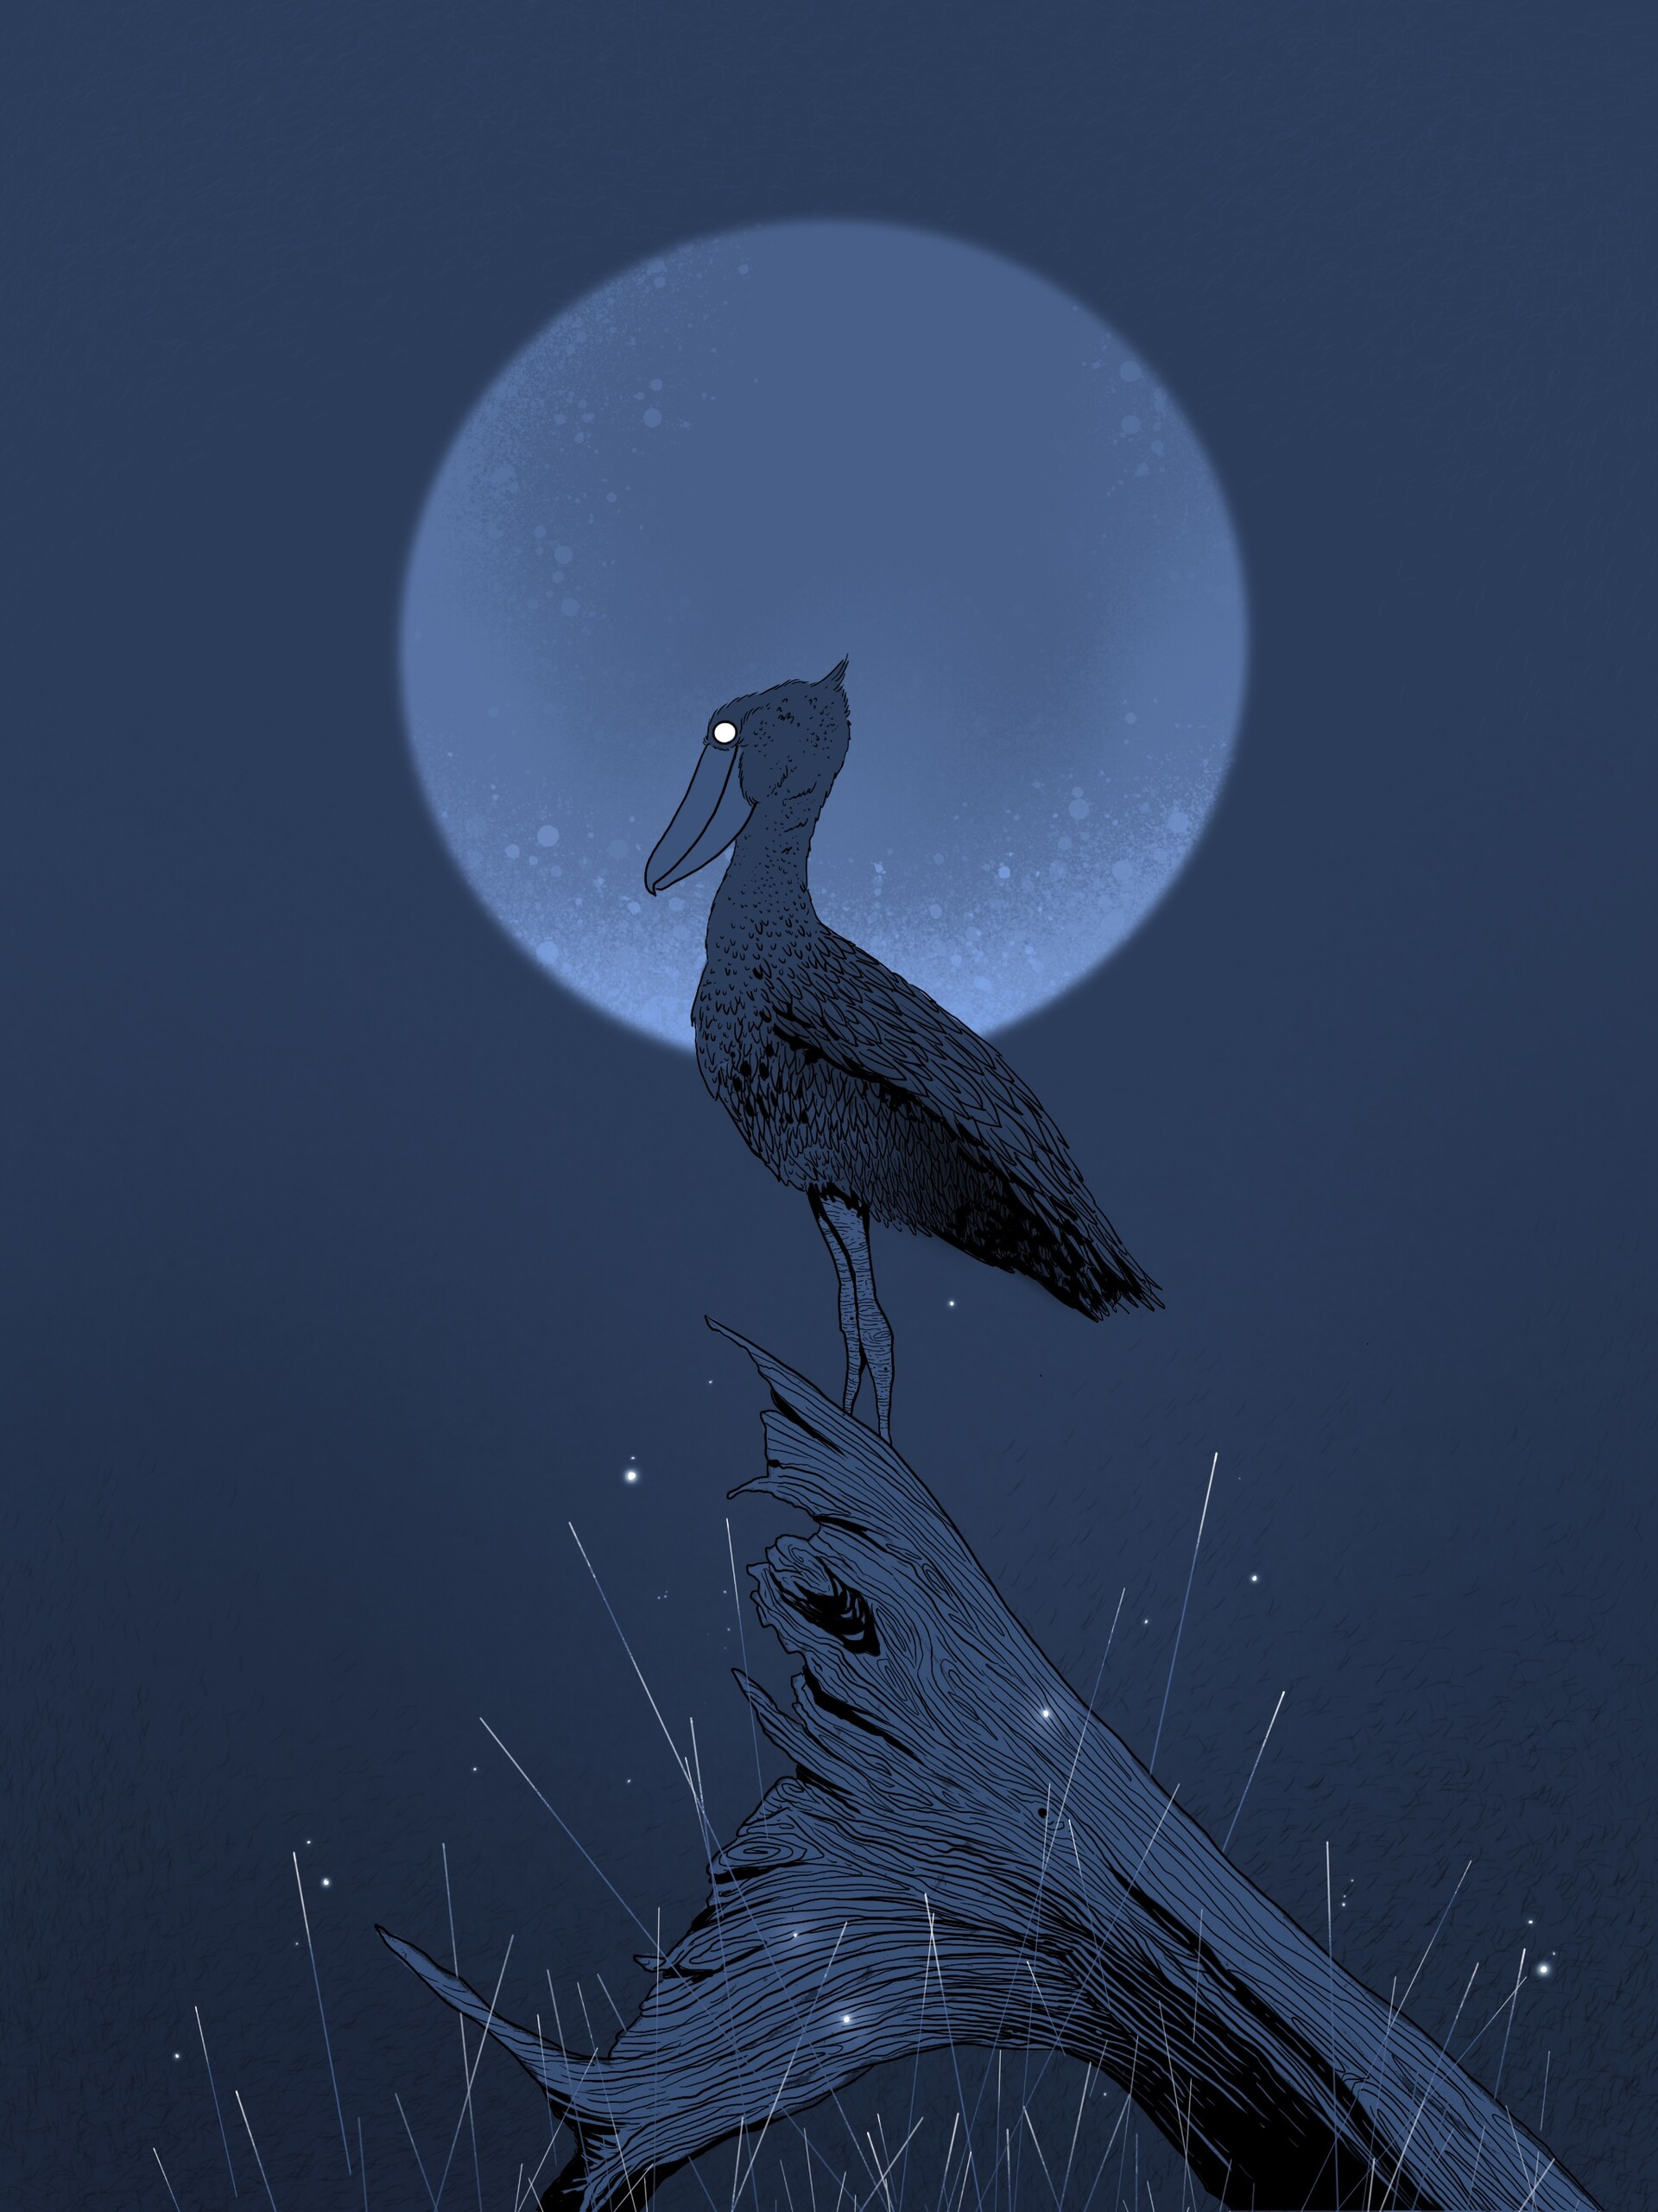 102245 download wallpaper Pelican, Stump, Night, Moon, Bird, Art screensavers and pictures for free